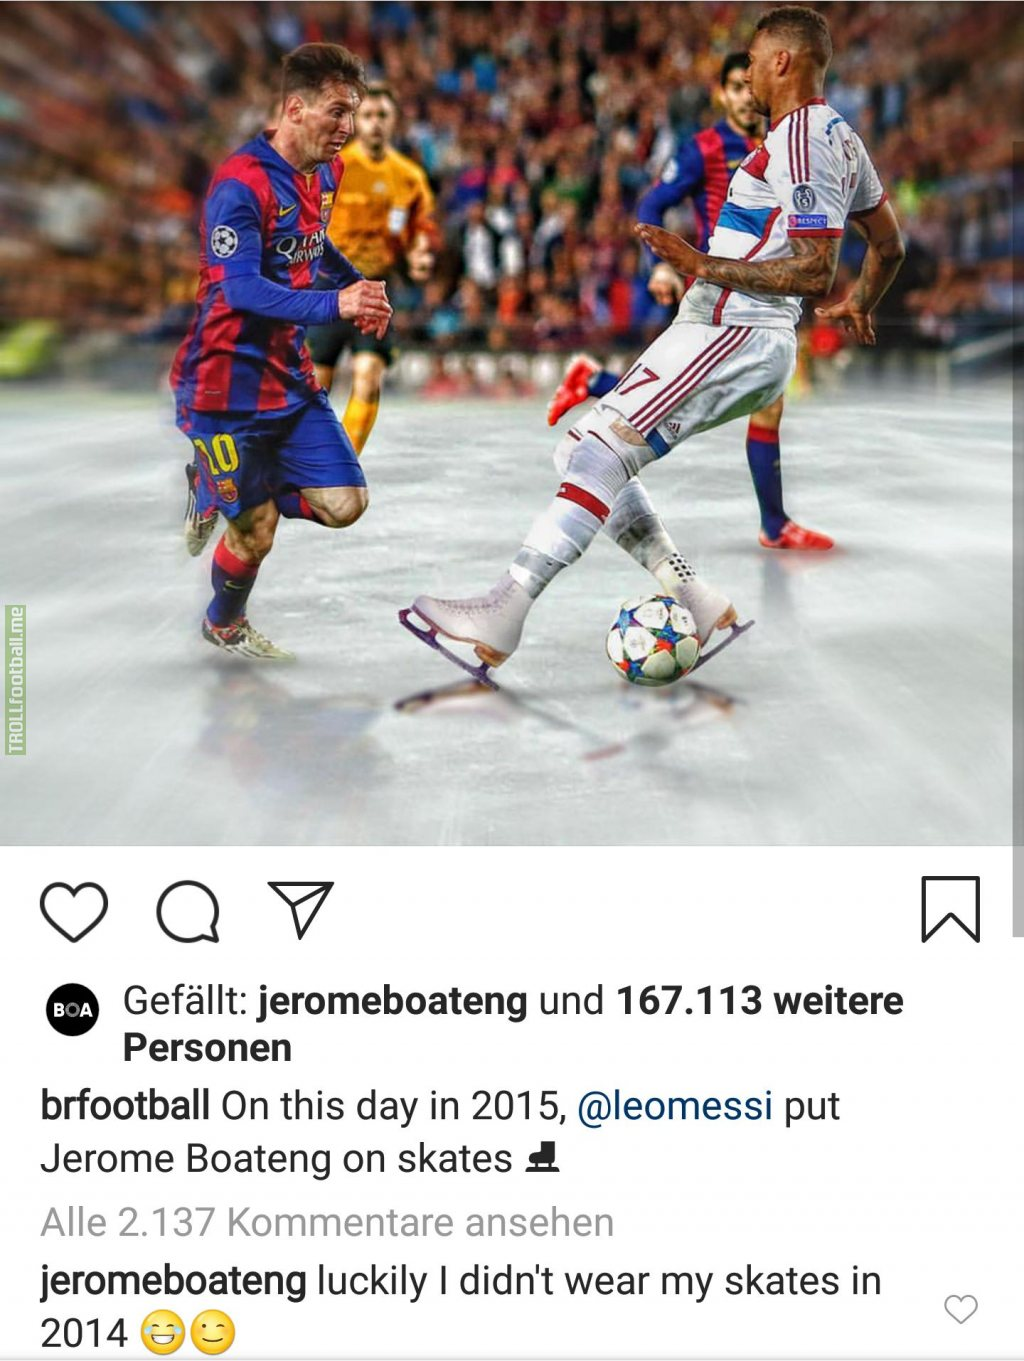 Bleacher report Football posted a throwback to the time Lionel Messi let Jerome Boateng slip in 2015. Jerome Boateng just replied by mentioning his performance in the 2014 world cup final